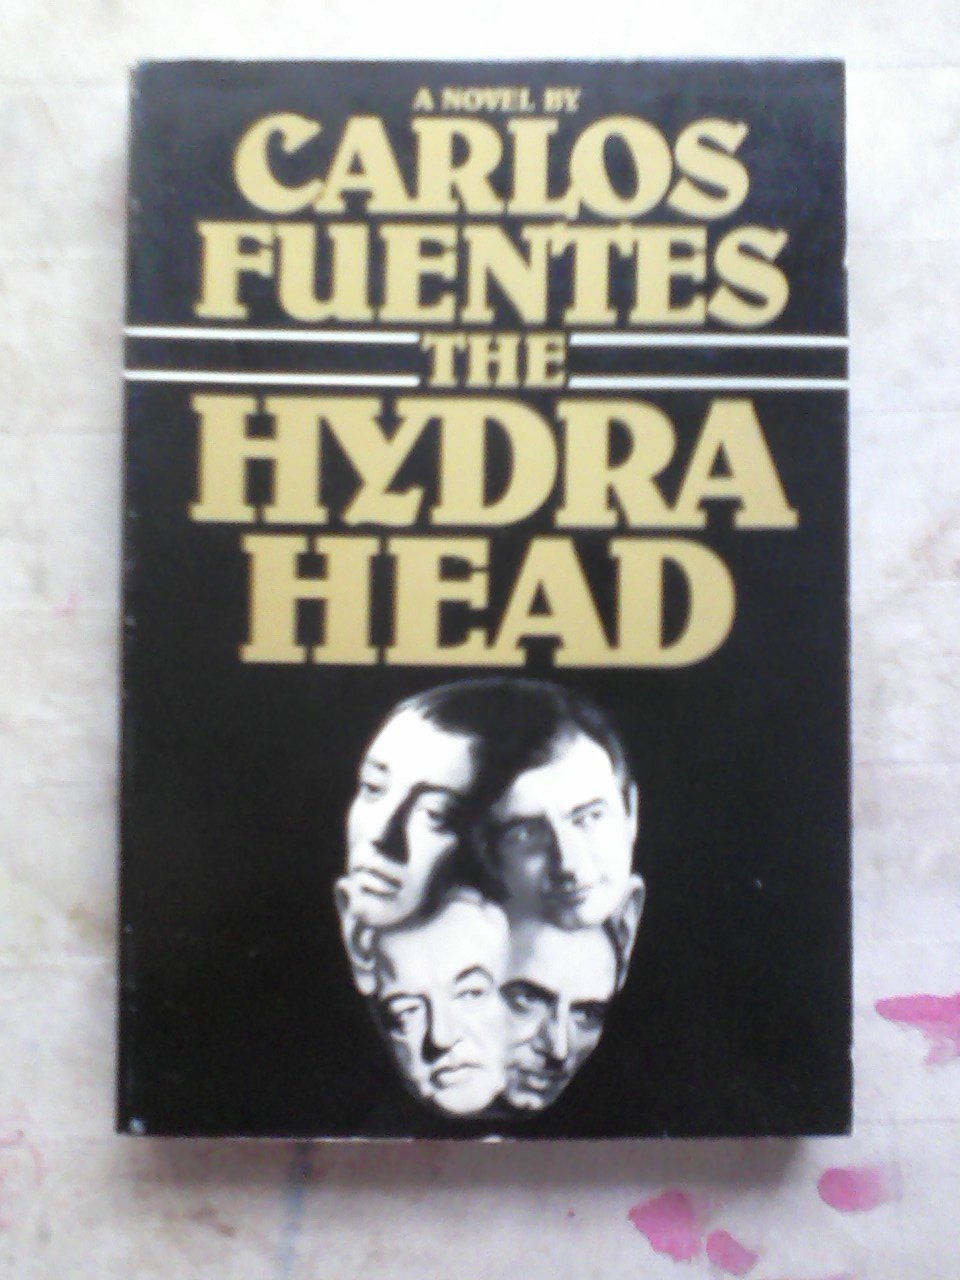 The Hydra Head., Fuentes, Carlos